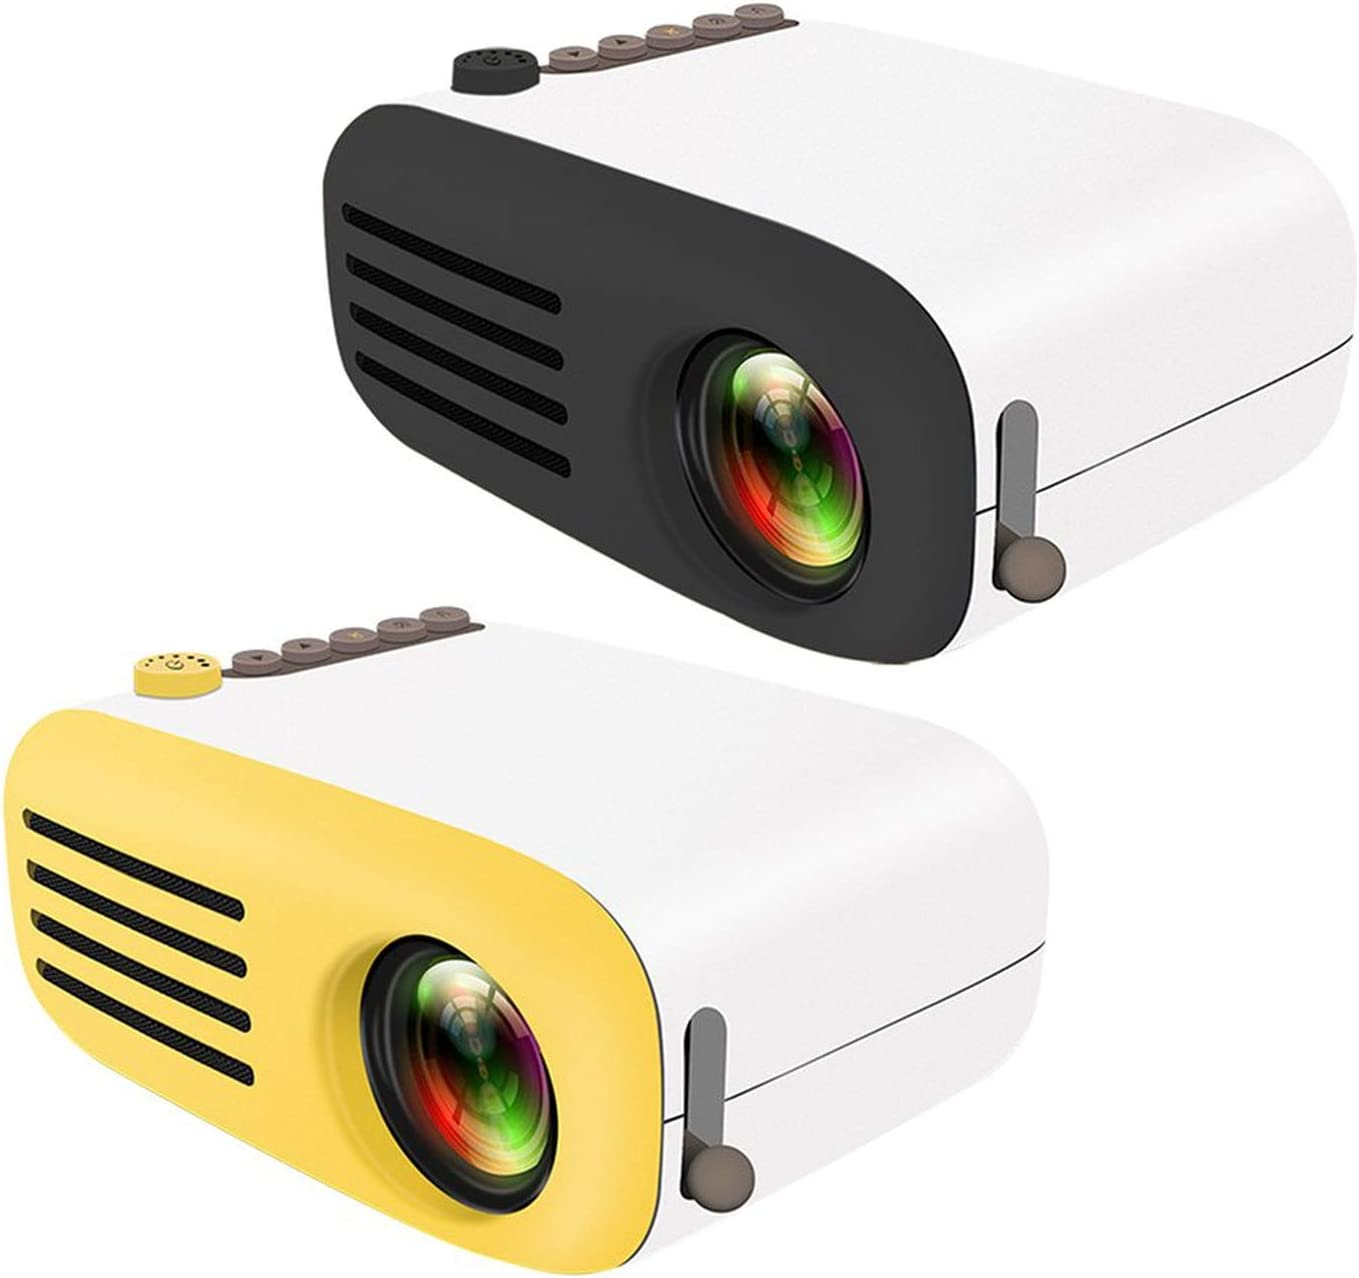 Mini Projector Yg200 Home Portable Led Projector Supports Hd 1080P Small Projector 20 60 Inch Projection Size,China,US